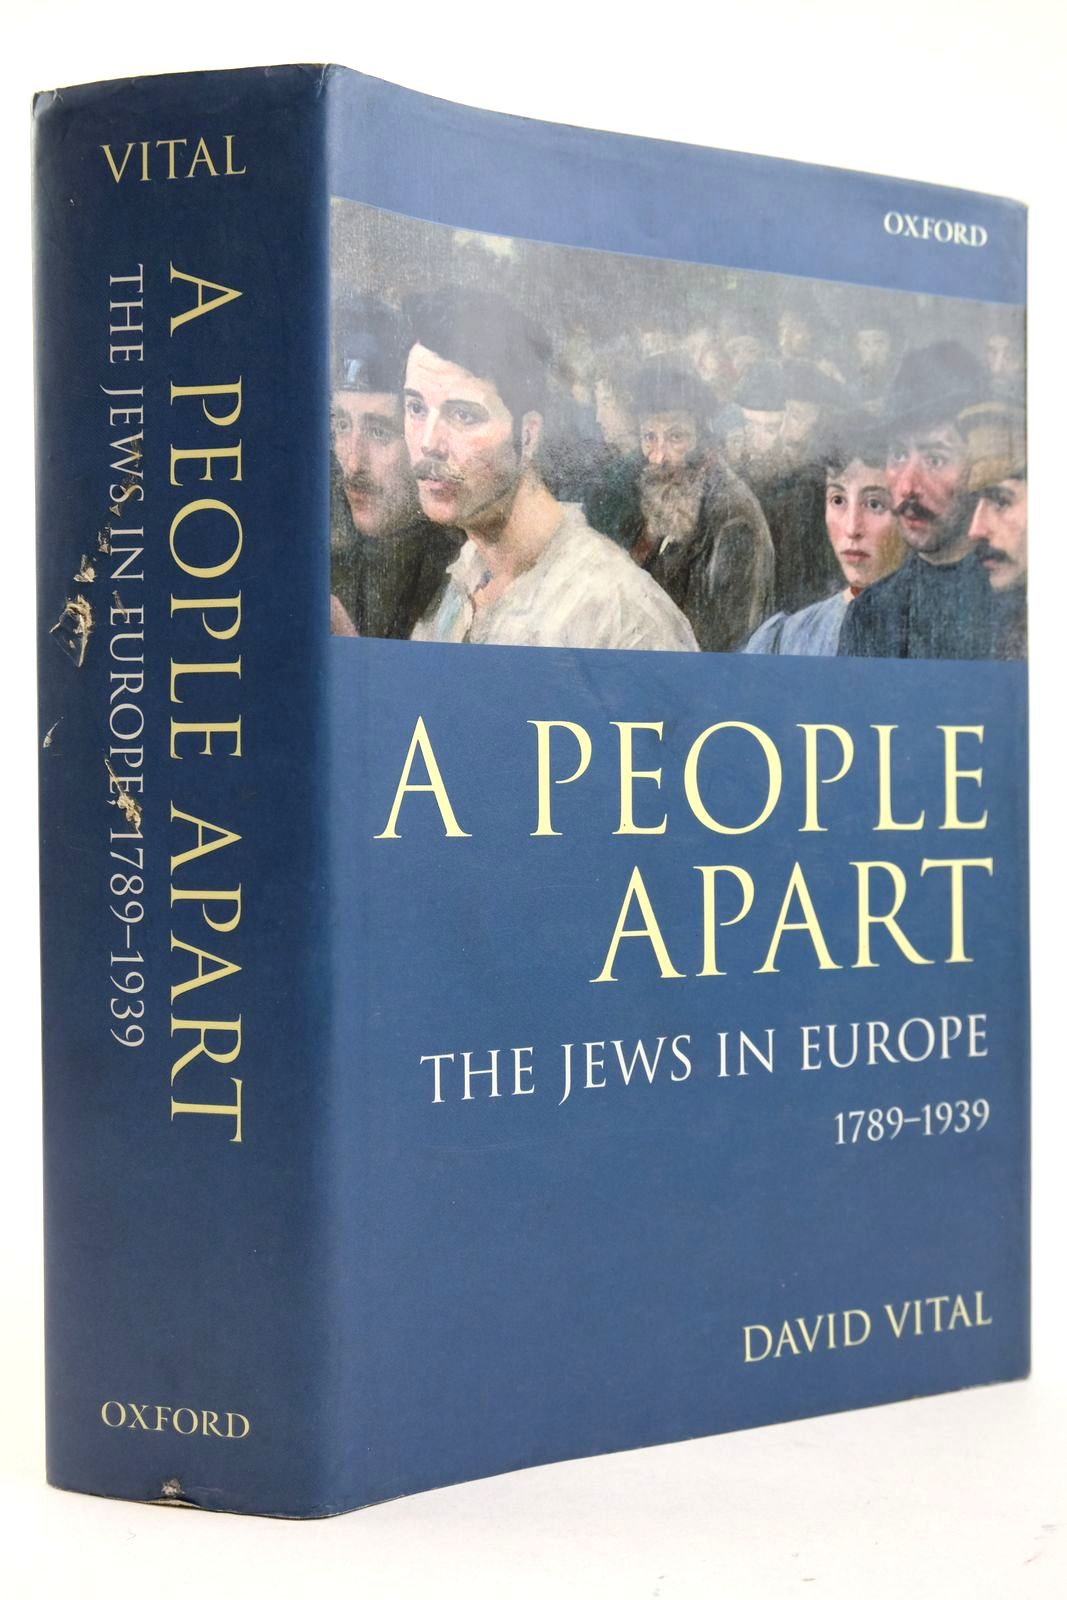 Photo of A PEOPLE APART THE JEWS IN EUROPE 1789-1939 written by Vital, David published by Oxford University Press (STOCK CODE: 2132936)  for sale by Stella & Rose's Books